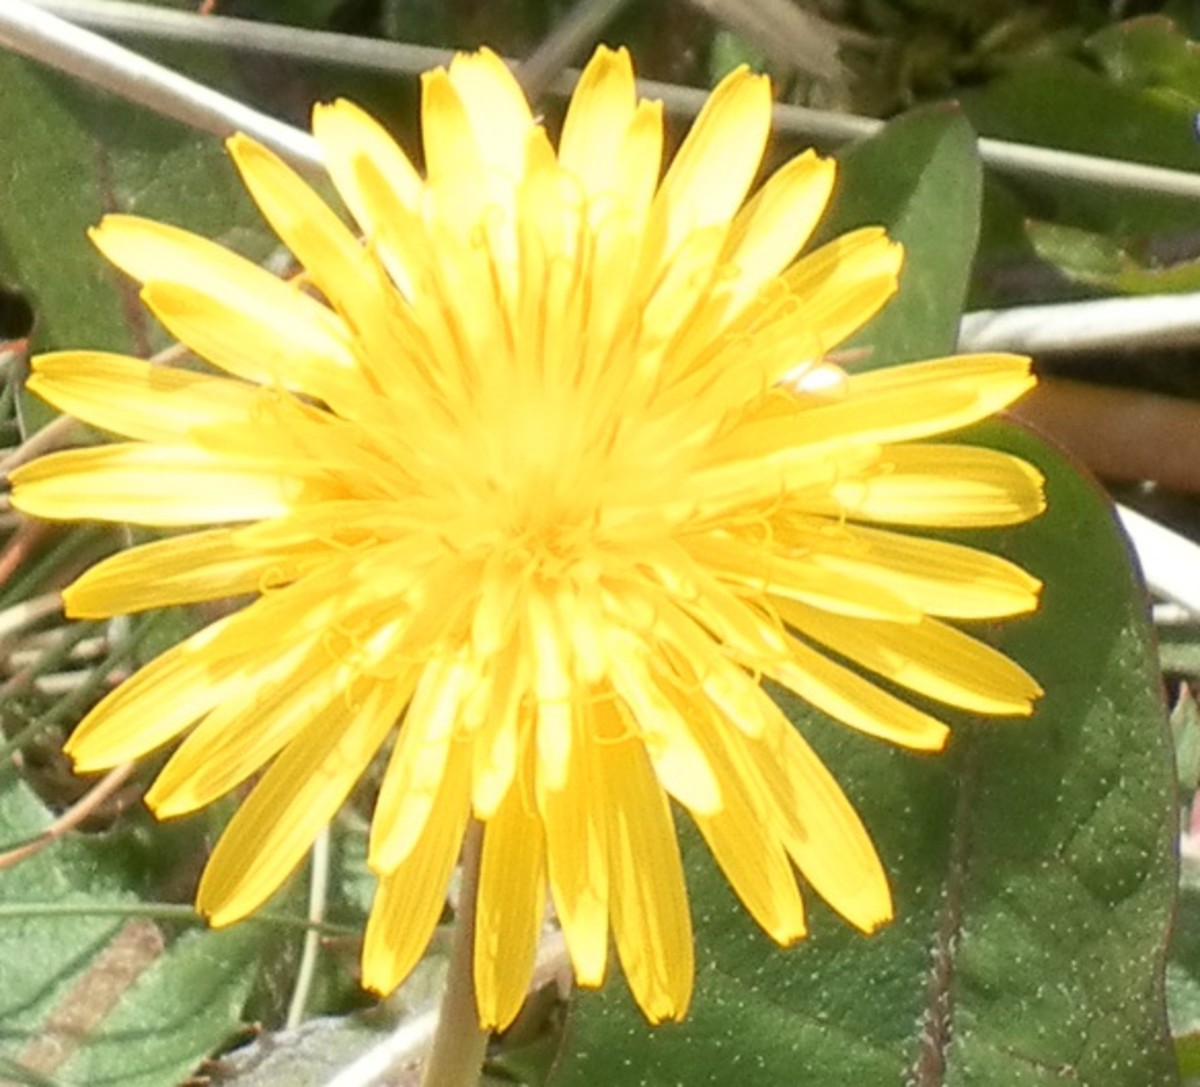 Dandelion flowers are known as piss-a-beds in parts of Lancashire